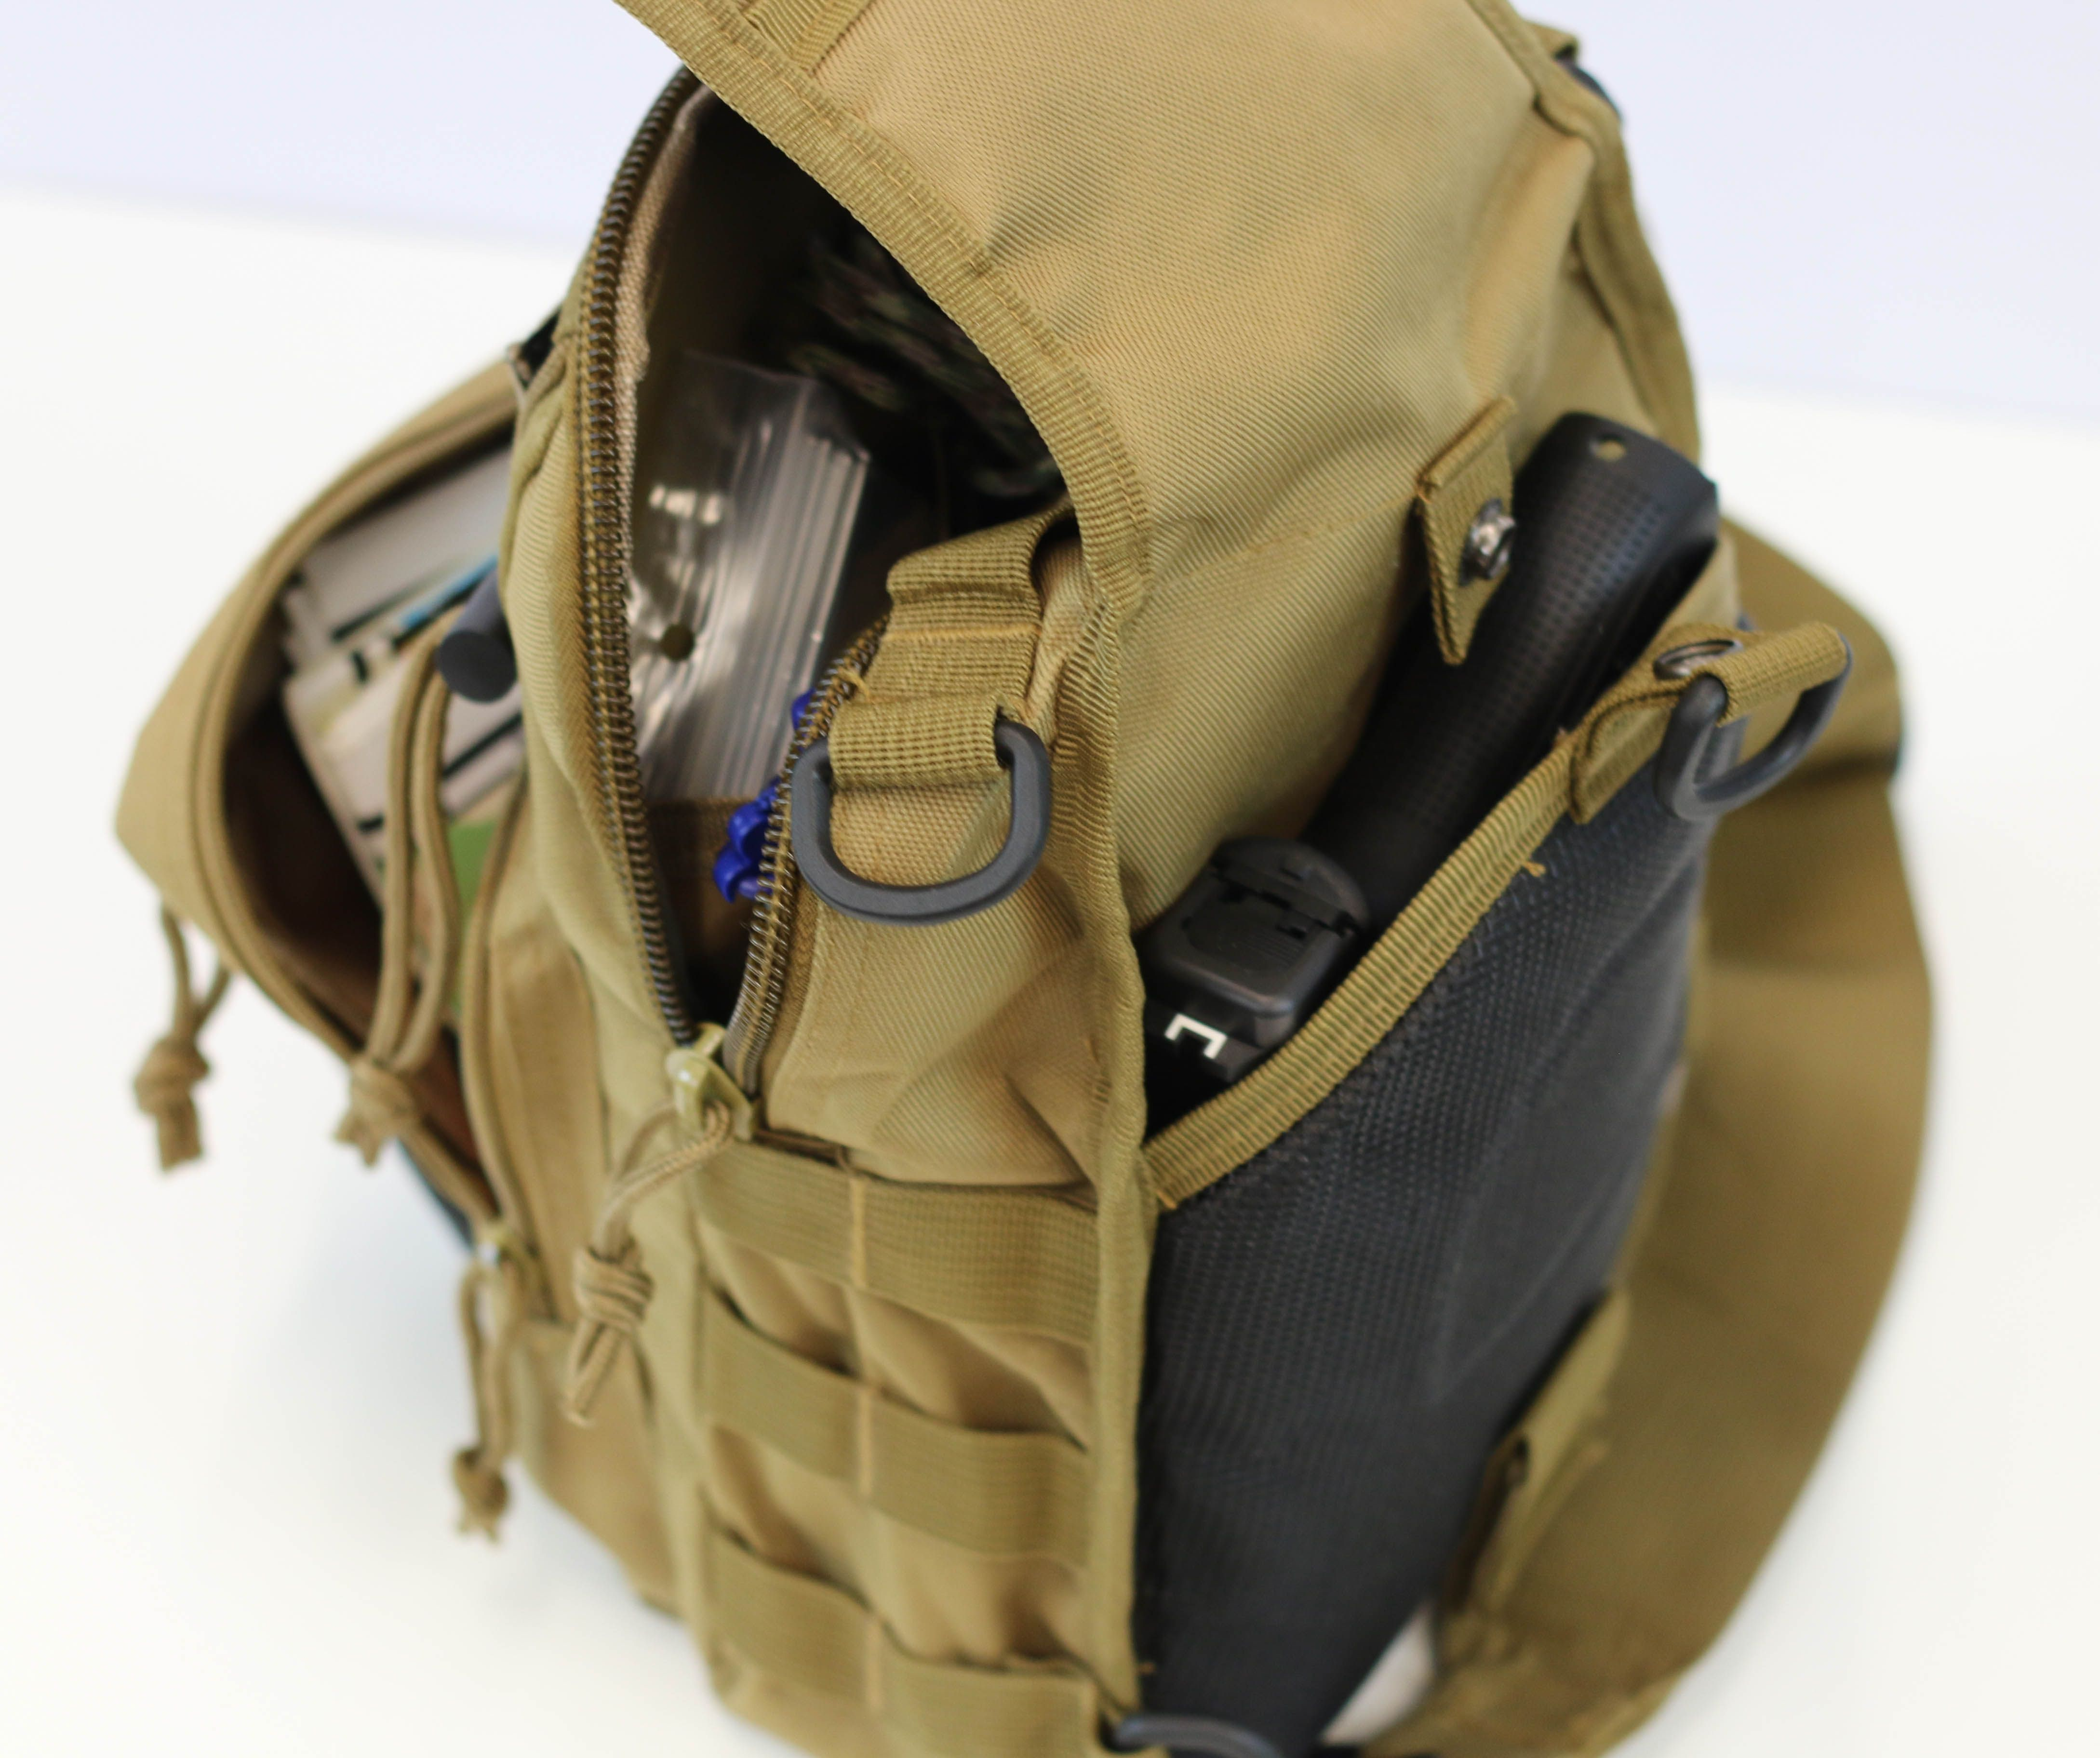 Tactical Sling Bag with MOLLE System - Carry conceal in back pouch ...